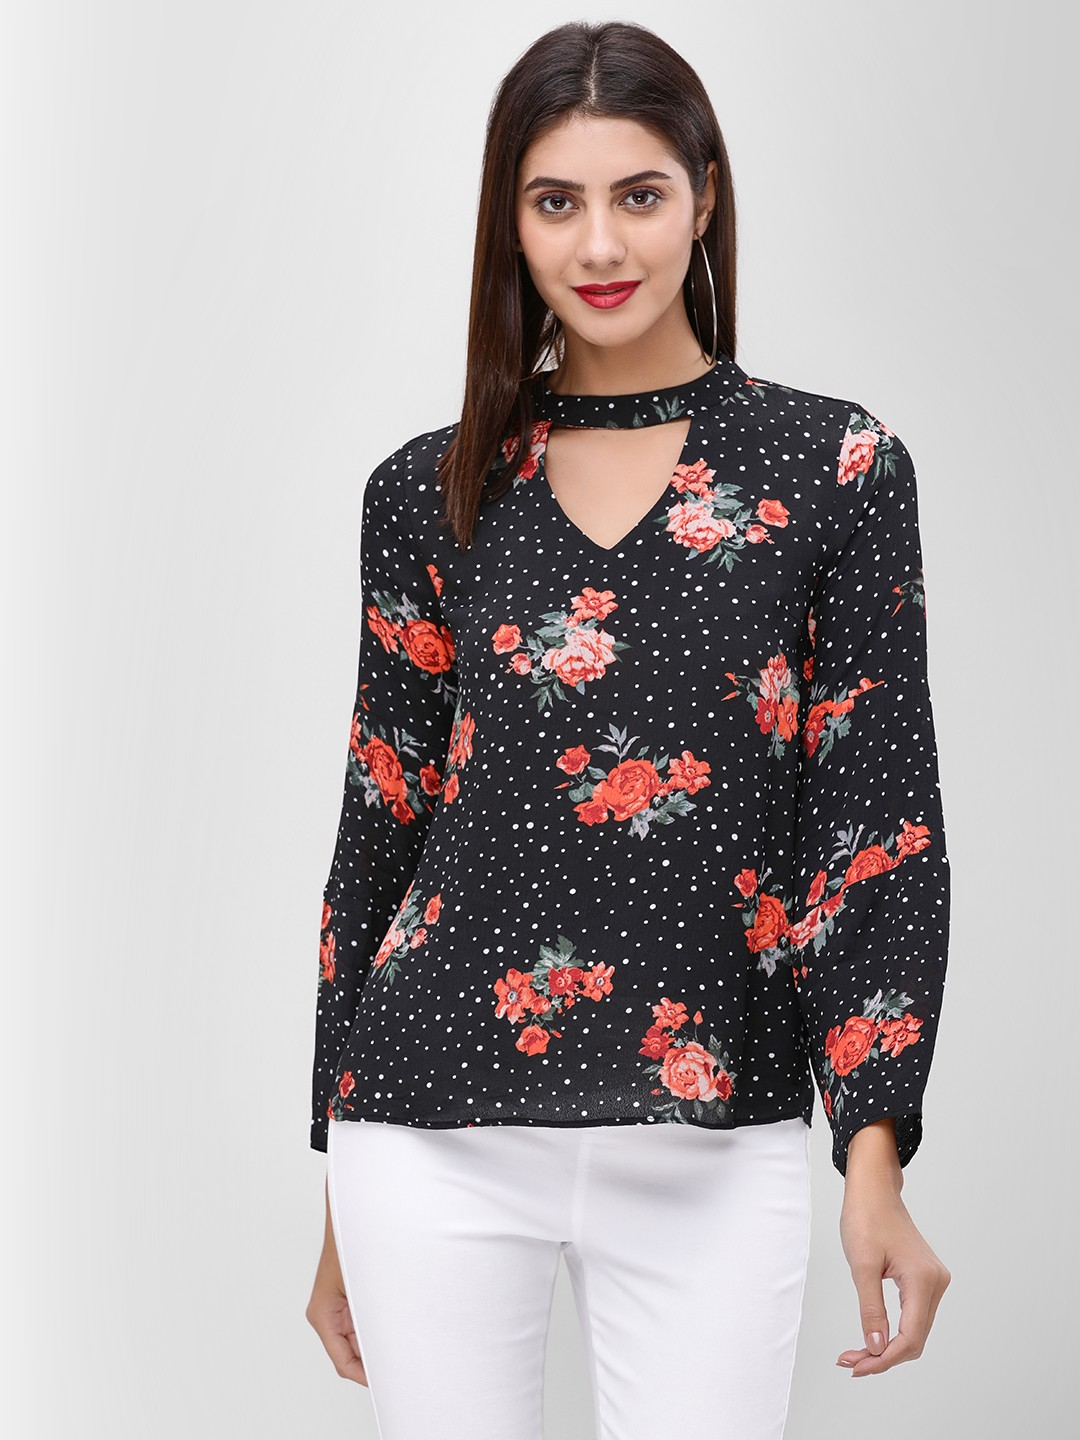 Cover Story Print Floral Printed Choker Neck Top 1